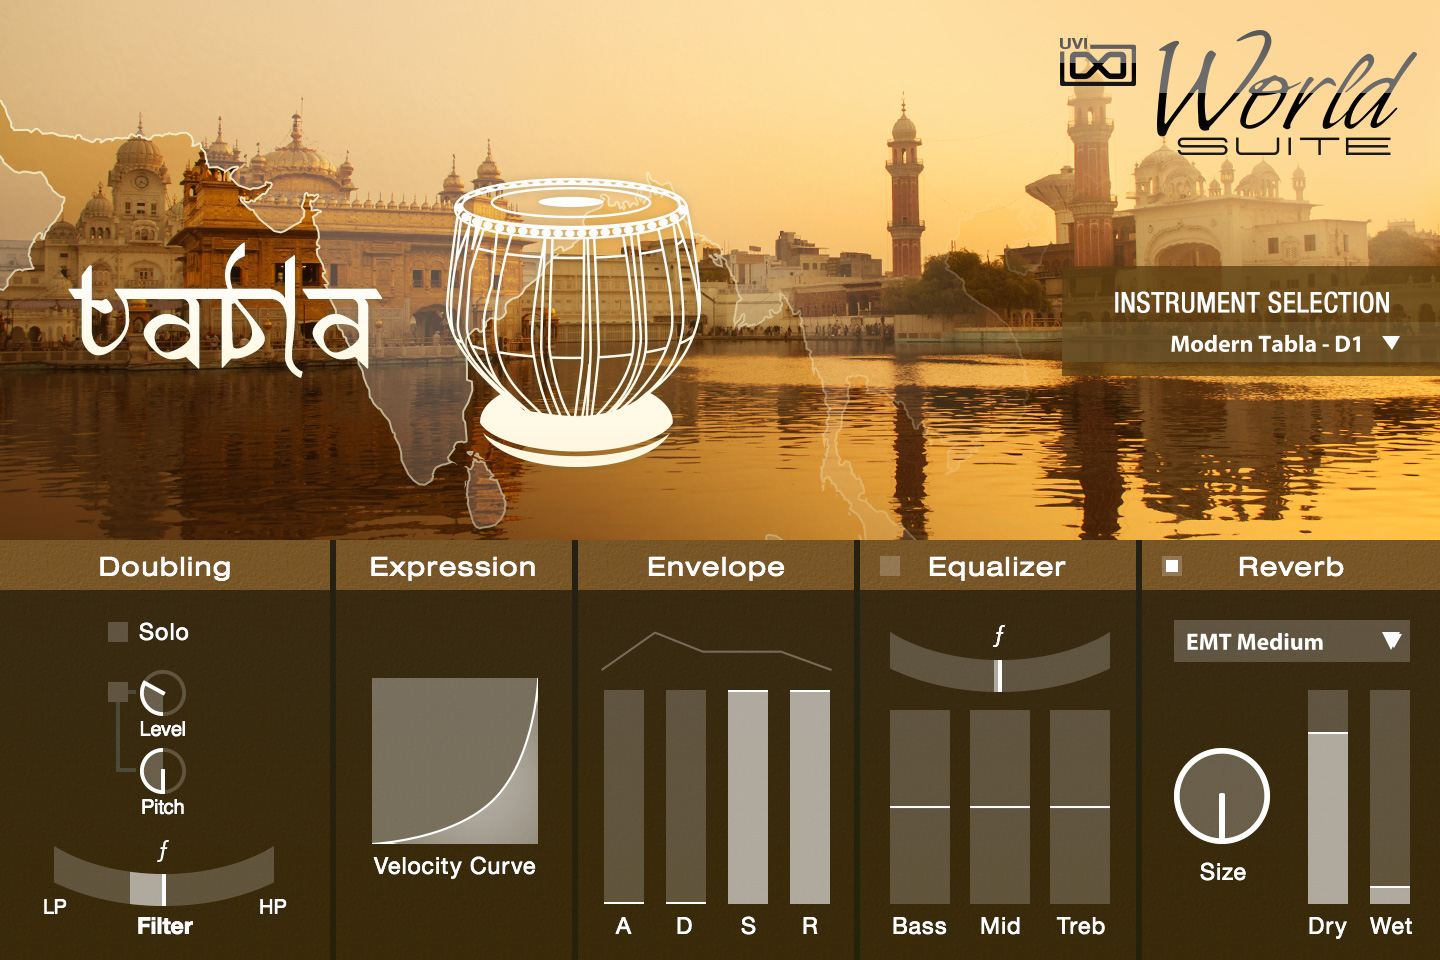 UVI World Suite | Tabla UI